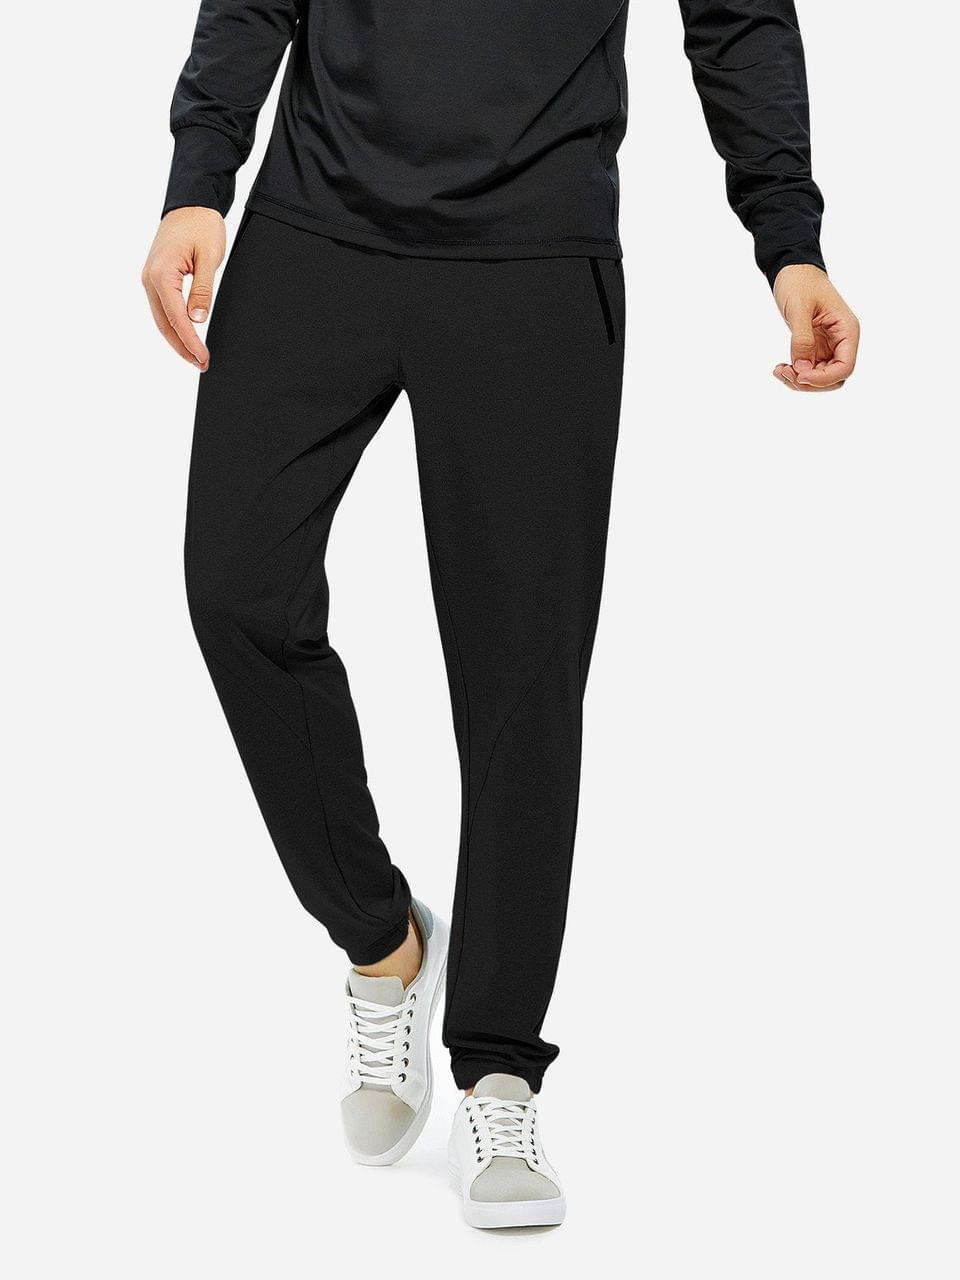 Men's Men Joggers Sweatpants With Zip Pocket - Black 3xl